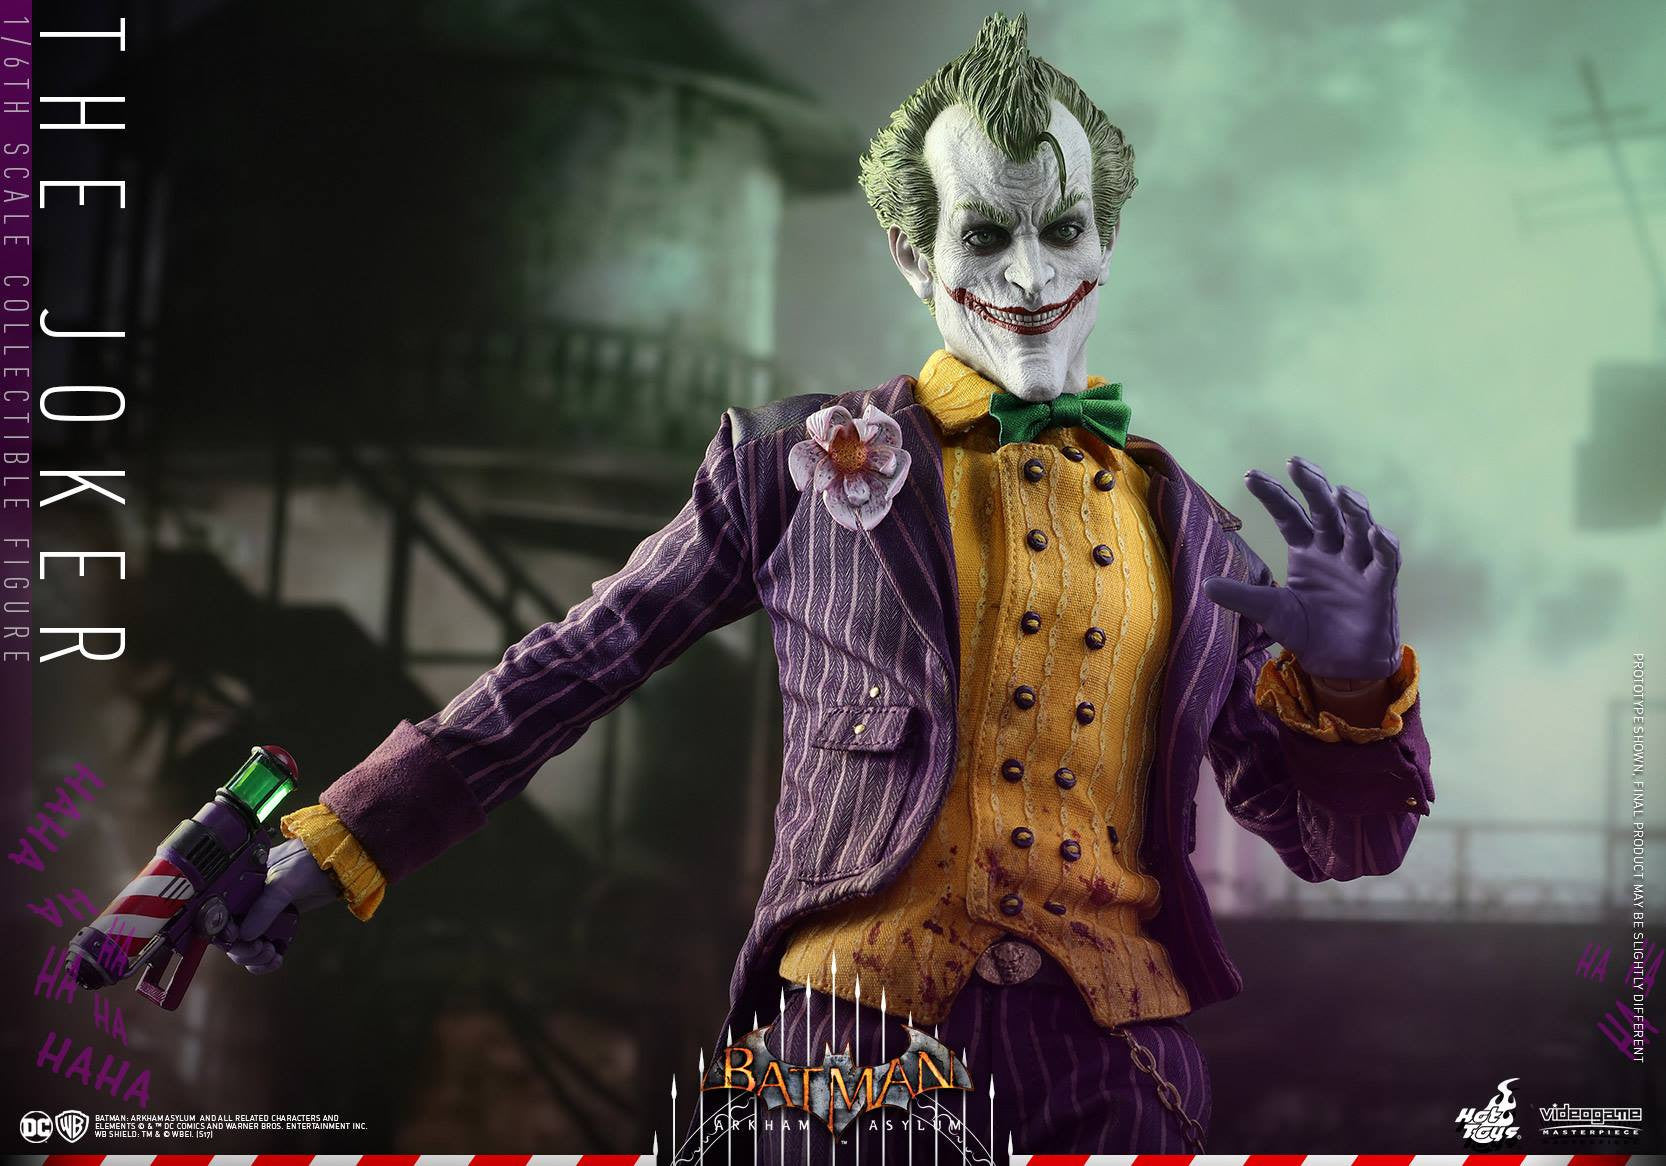 Hot Toys - VGM27 - Batman: Arkham Asylum - The Joker - Marvelous Toys - 12